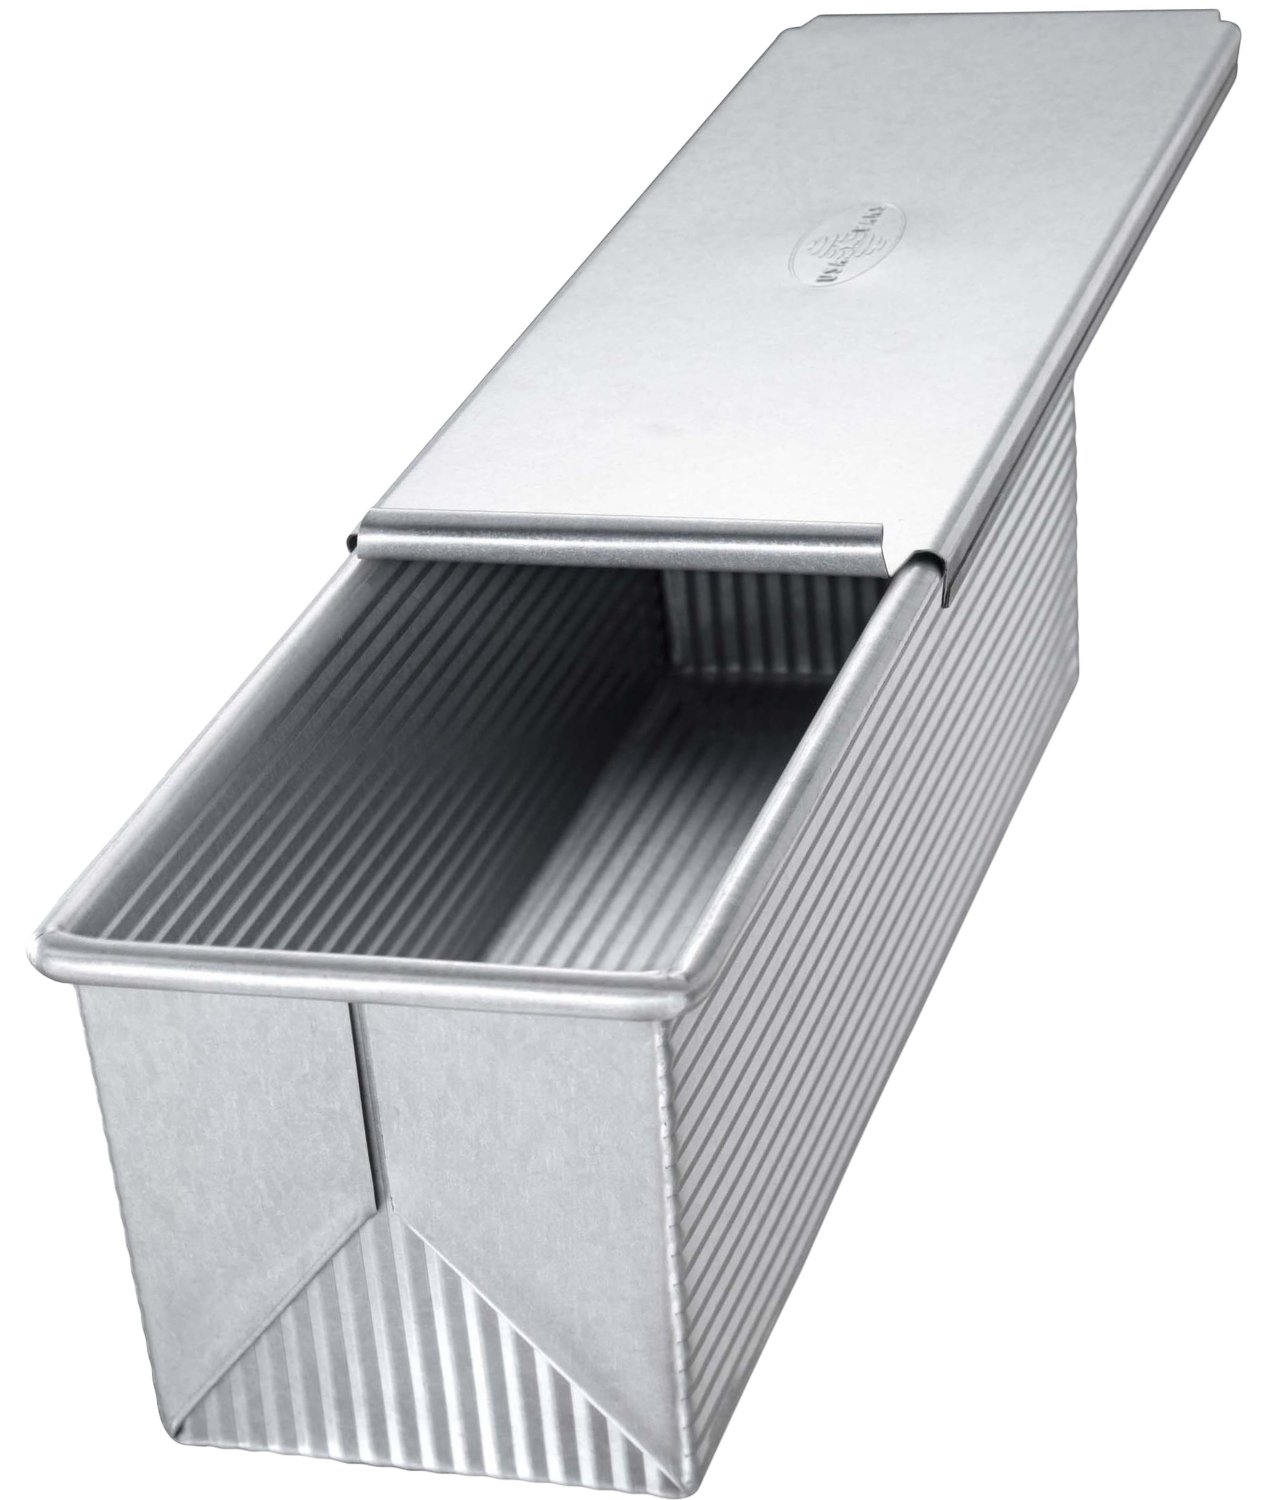 USA Pan Aluminized Steel Pullman Loaf Pan with Cover, 9 Inch